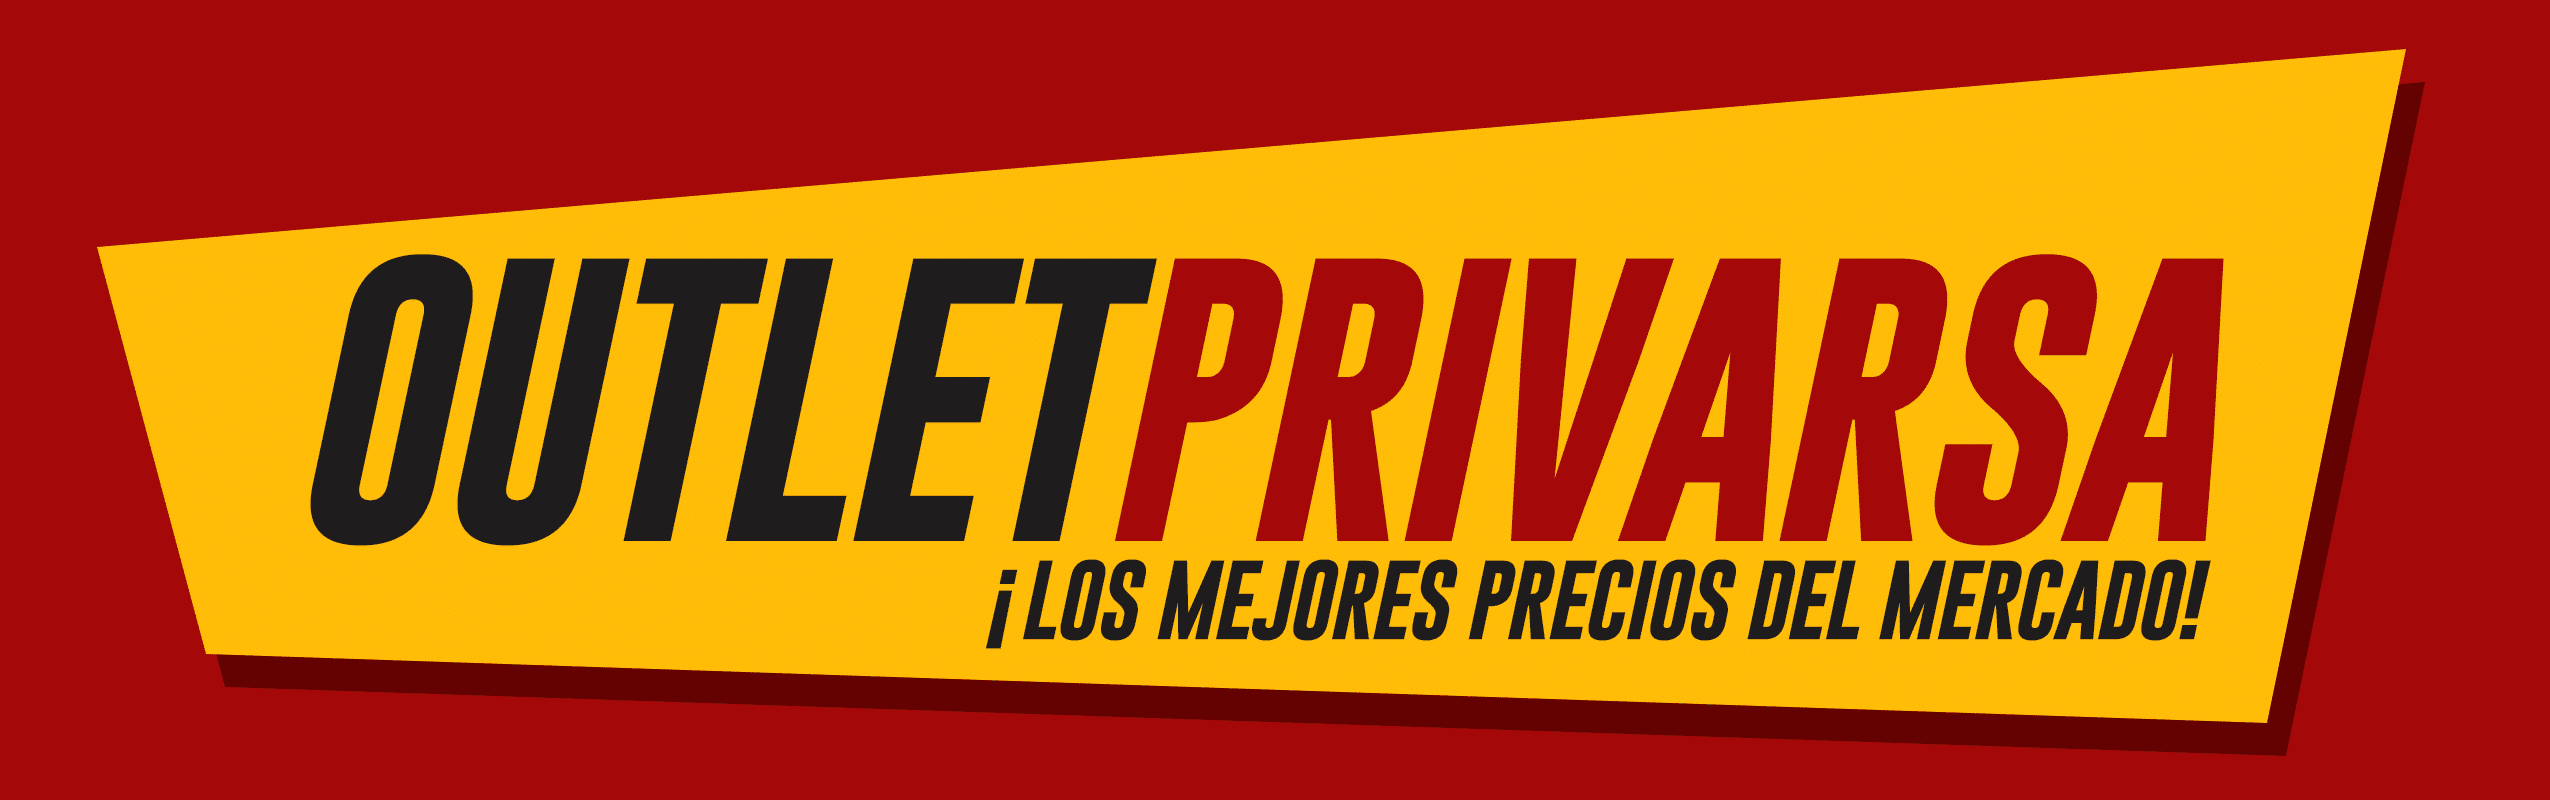 2020-ABR-PRIVARSA-BANNER-OUTLET